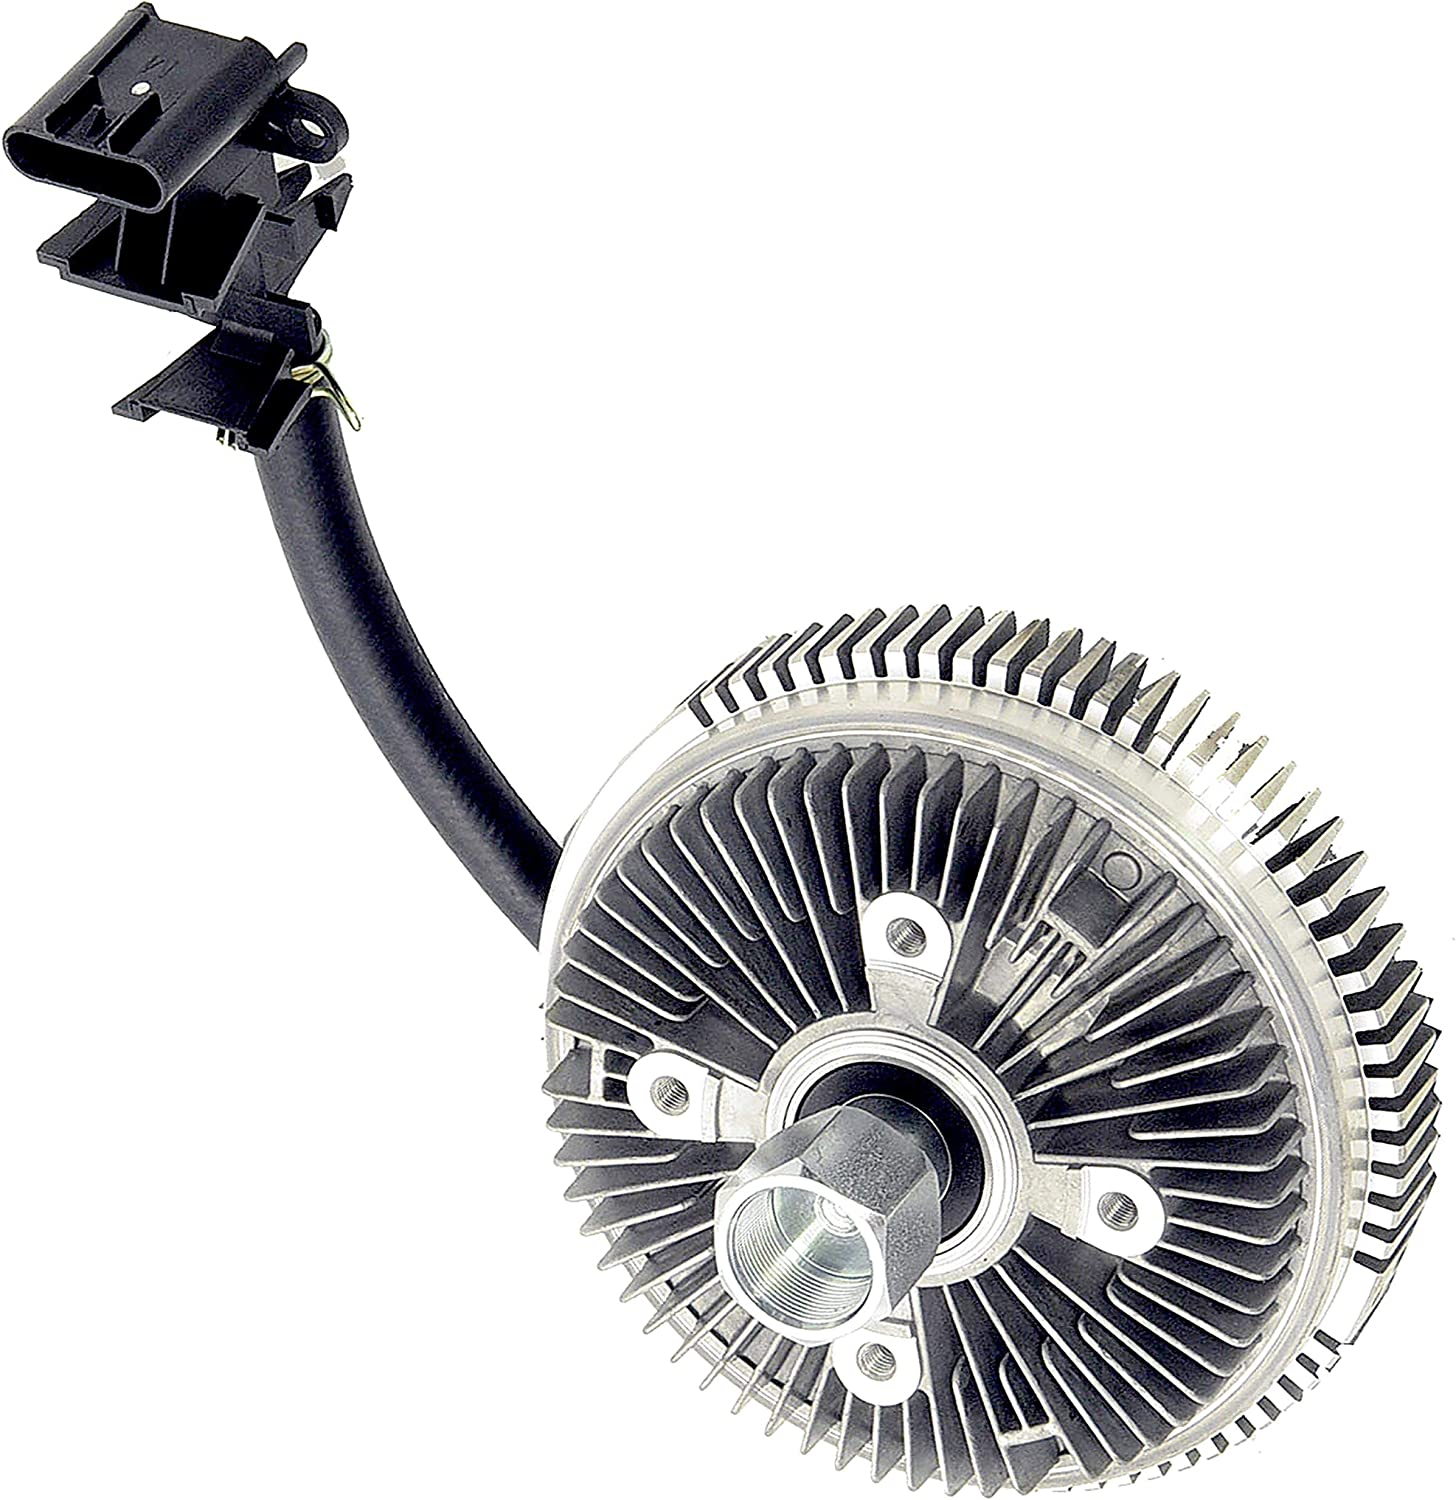 APDTY 733112 Electronic Radiator Cooling Fan Clutch Electro-Viscous EV (Replaces 15293048, 25790869, 8103830290)